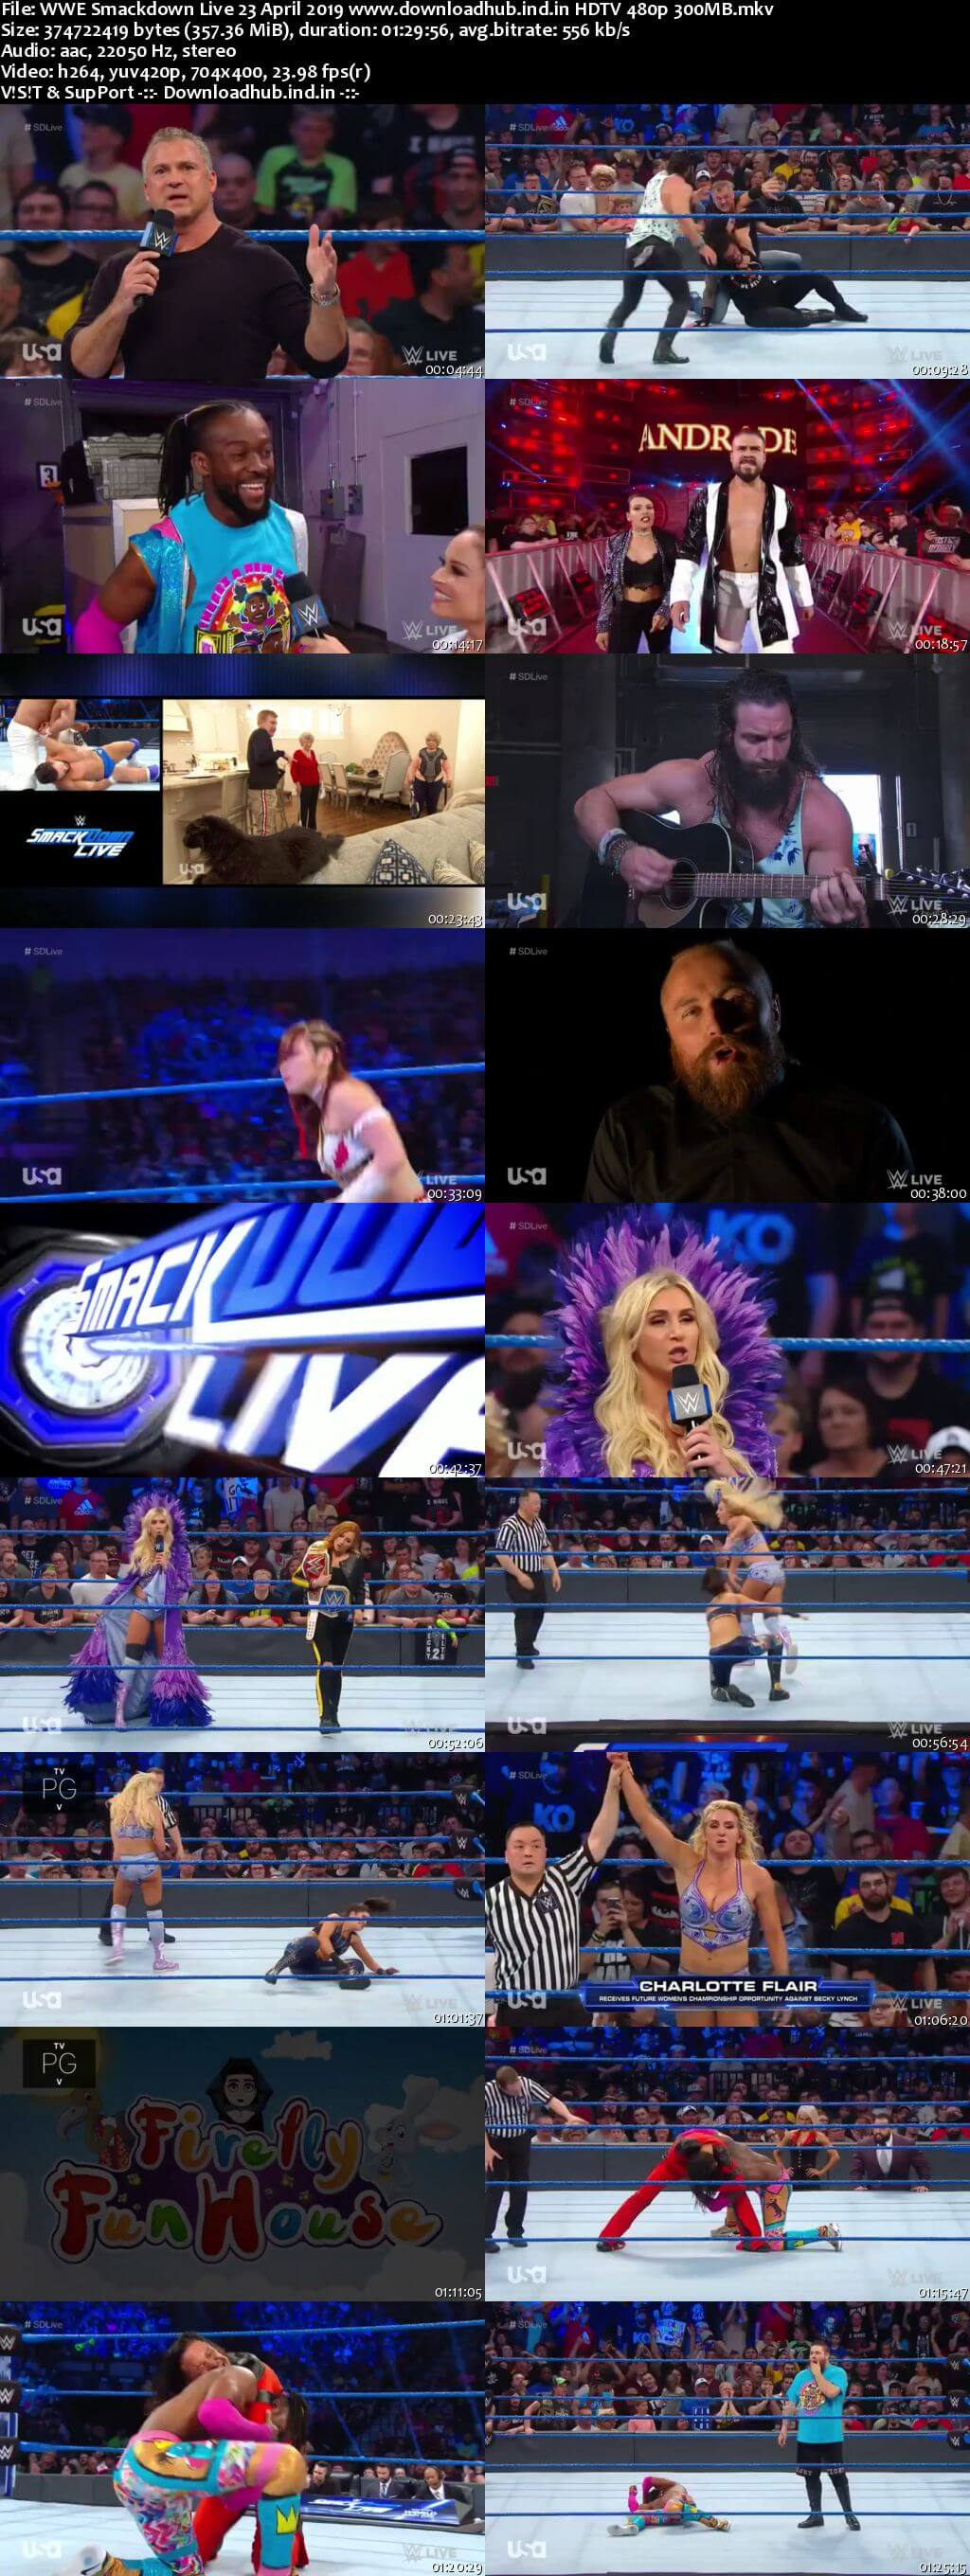 WWE Smackdown Live 23rd April 2019 300MB HDTV 480p